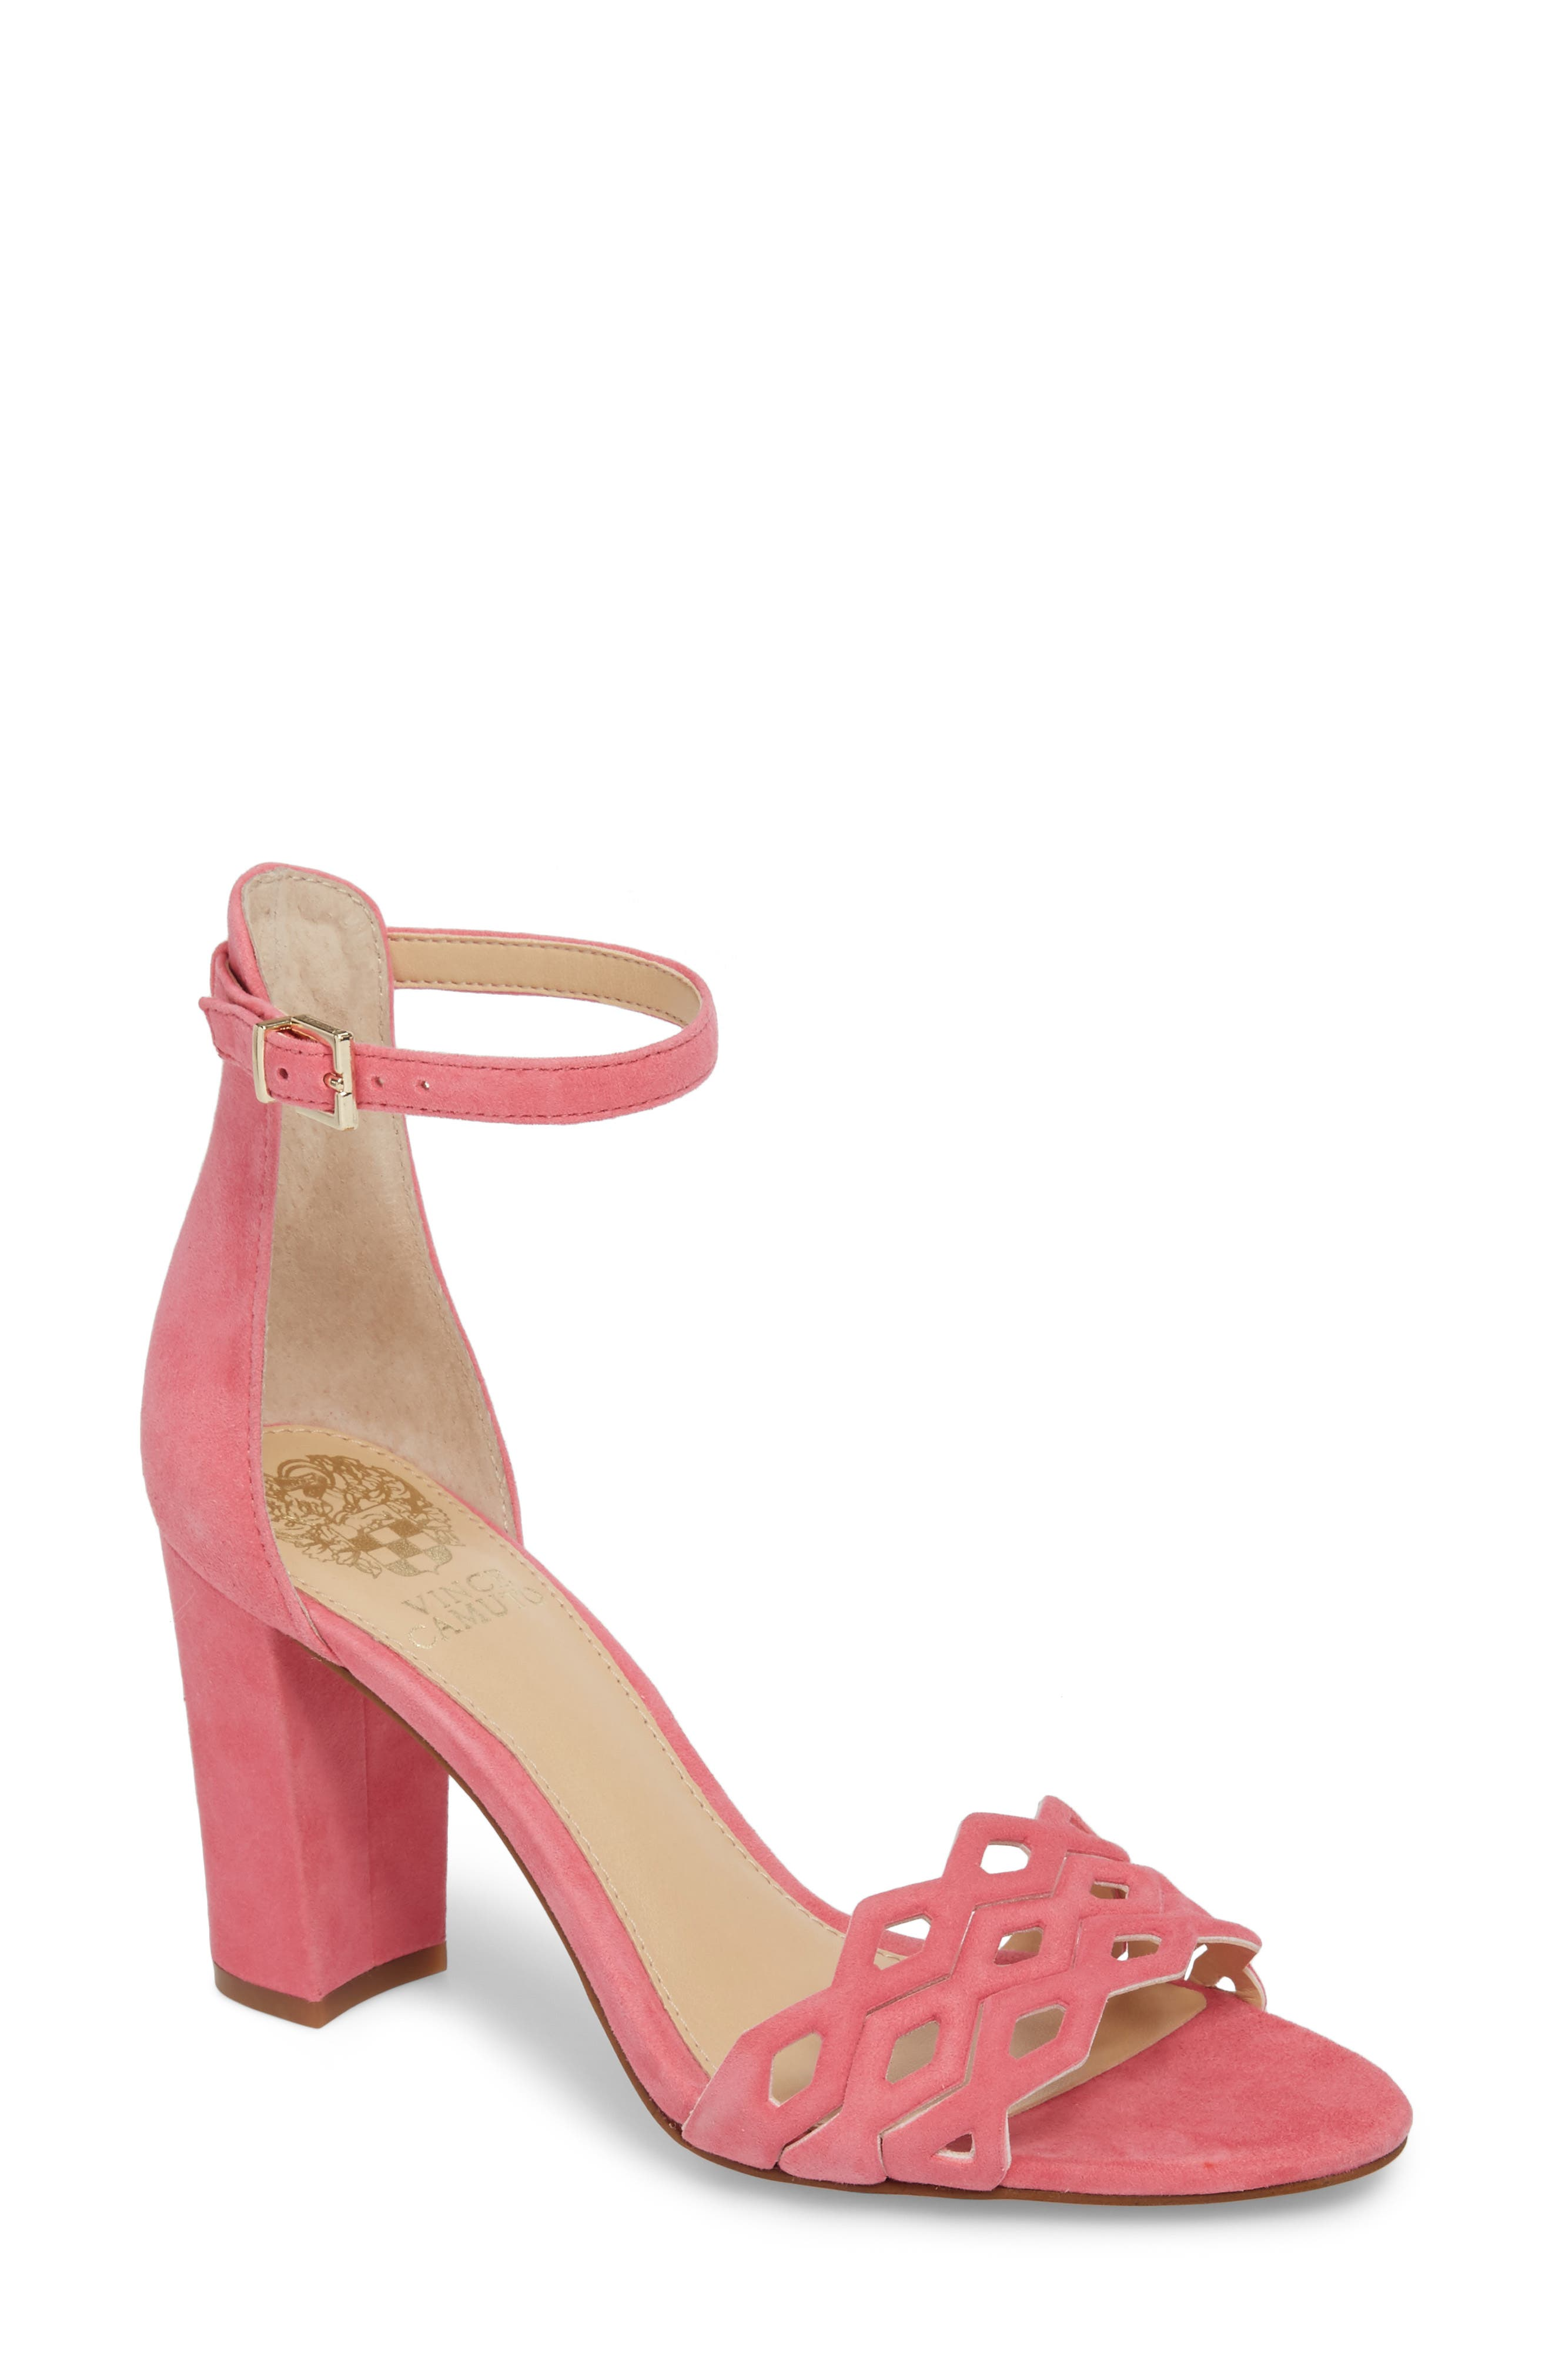 Caveena Block Heel Sandal,                             Main thumbnail 1, color,                             Soft Pink Suede